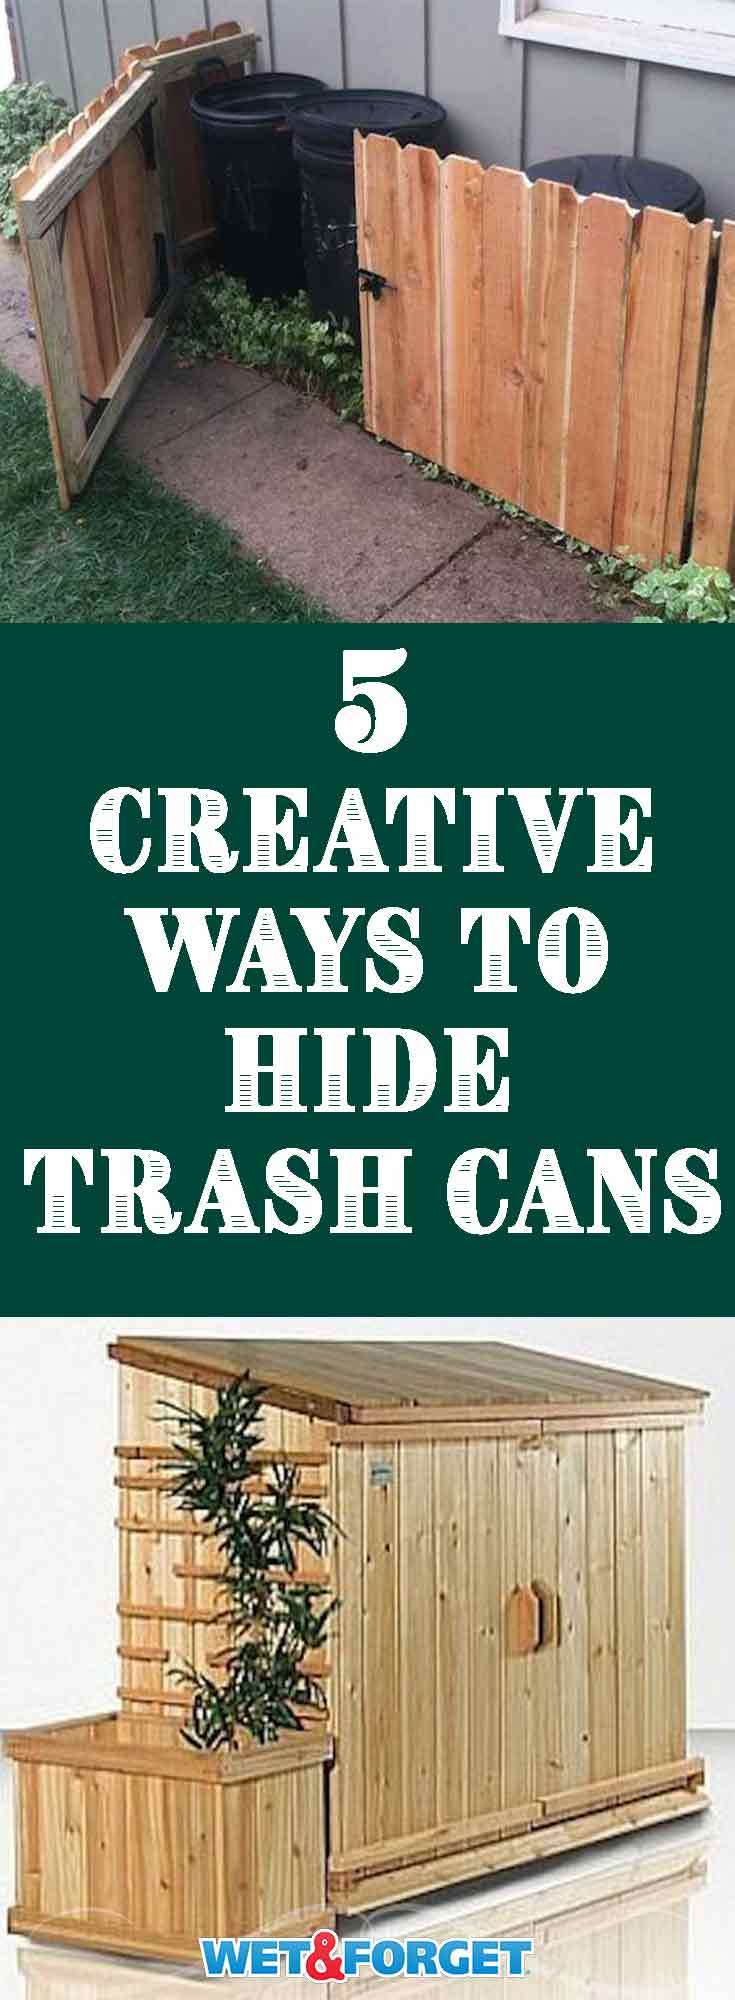 5 creative ways to hide trash cans around your home